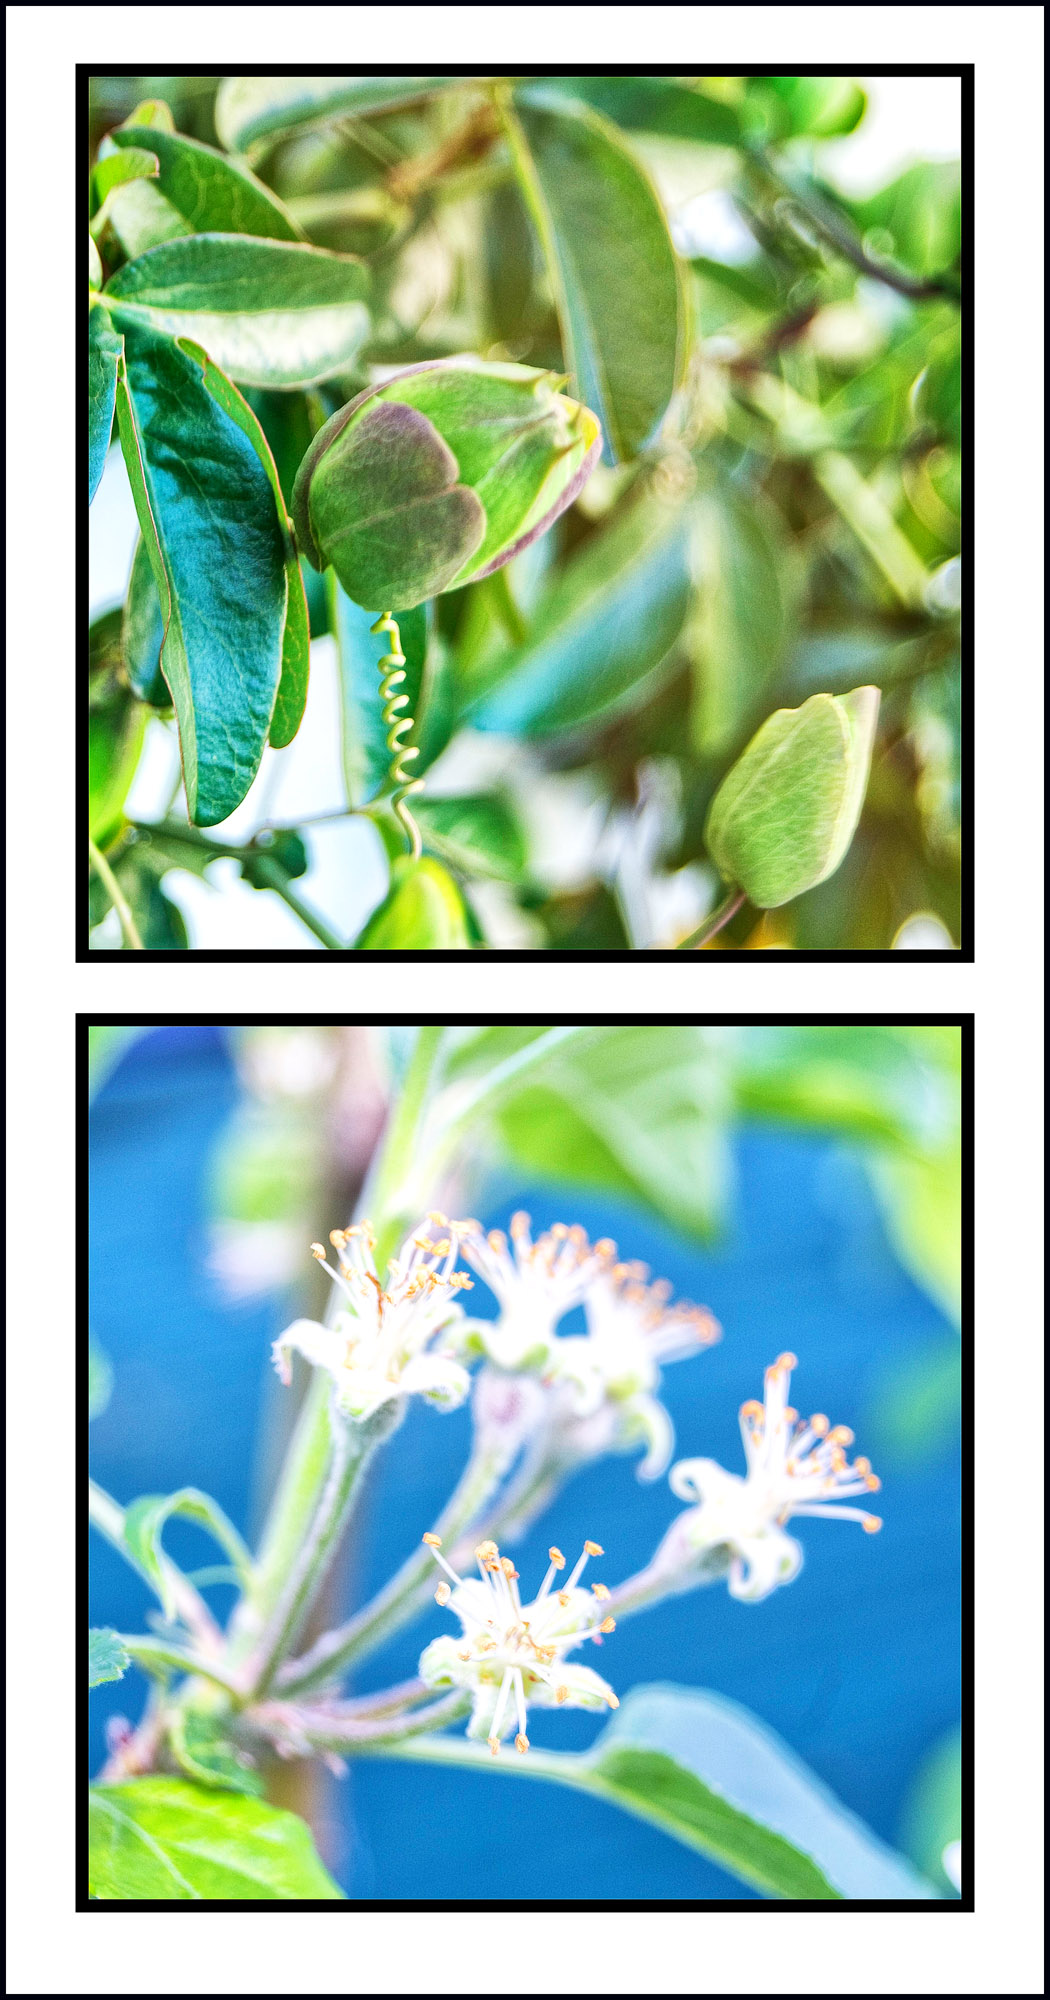 The top photo in this diptych is cause for great excitement in our household. I planted passion fruit vines last spring, taking pains to find a location that would protect against the heavy frosts we get in Canberra. The vines have done well over winter and are now about to fruit.